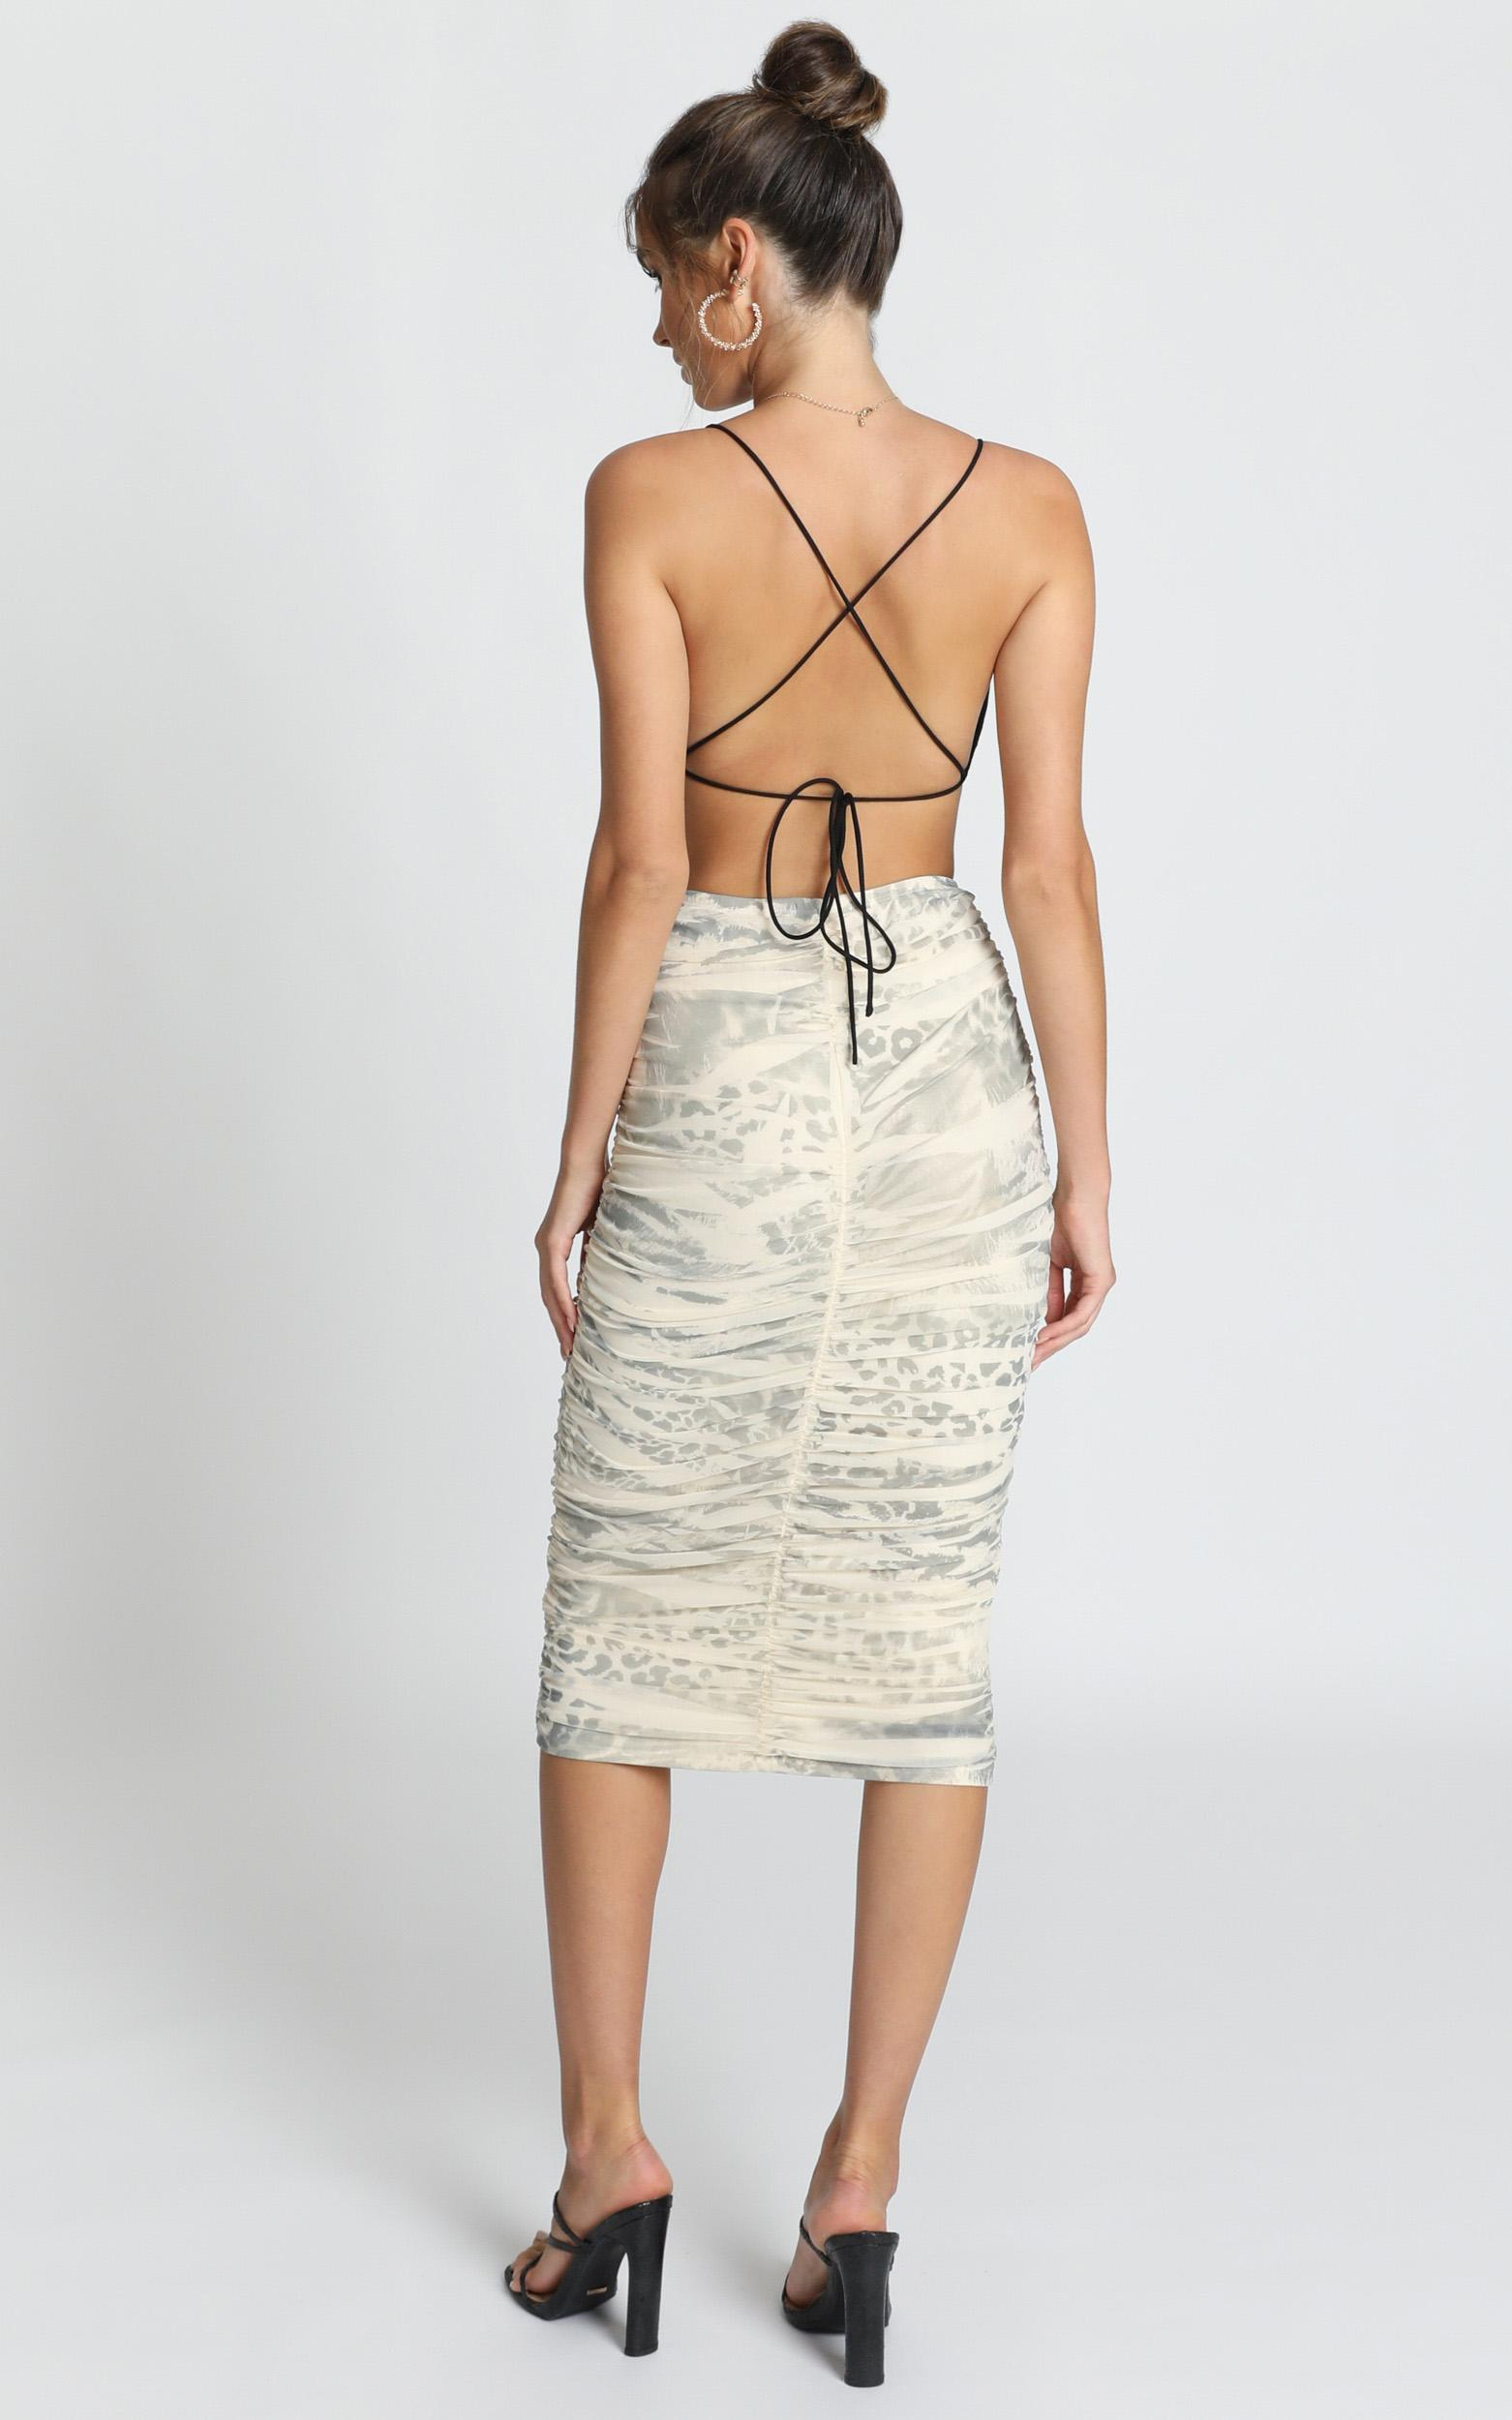 Fallout skirt in leopard print - 12 (L), Grey, hi-res image number null